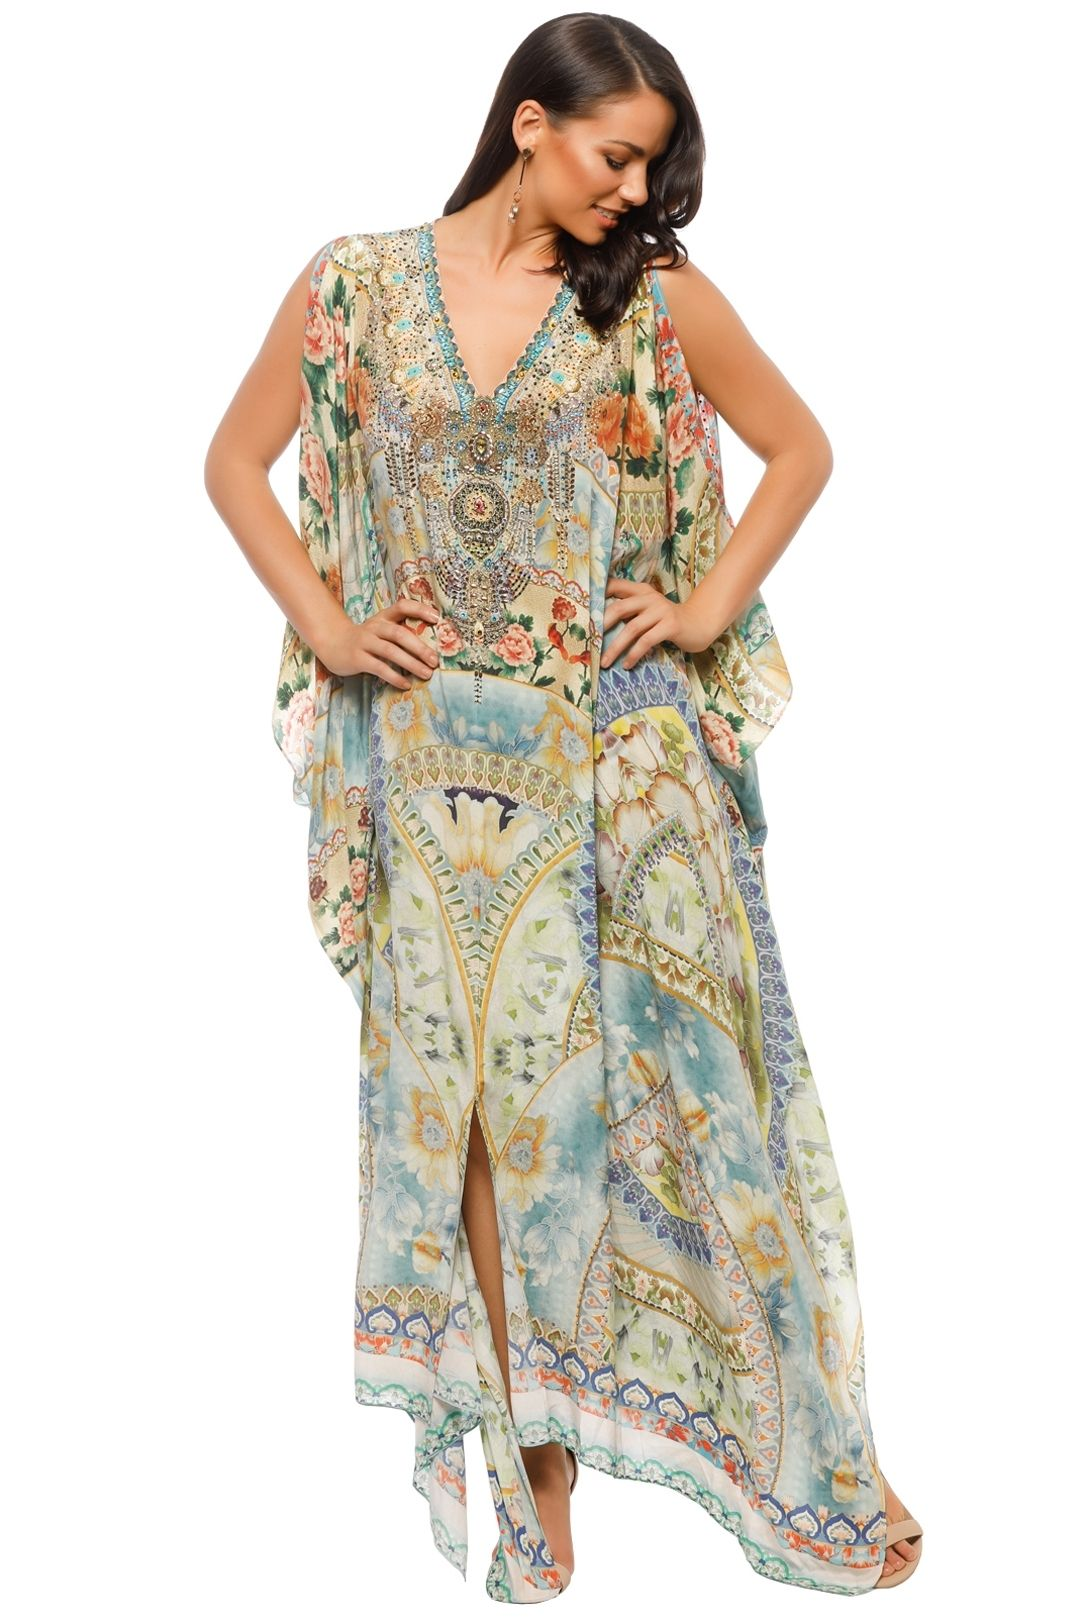 Camilla - Sign of Peace Split Front Sleeve Kaftan - Prints - Front